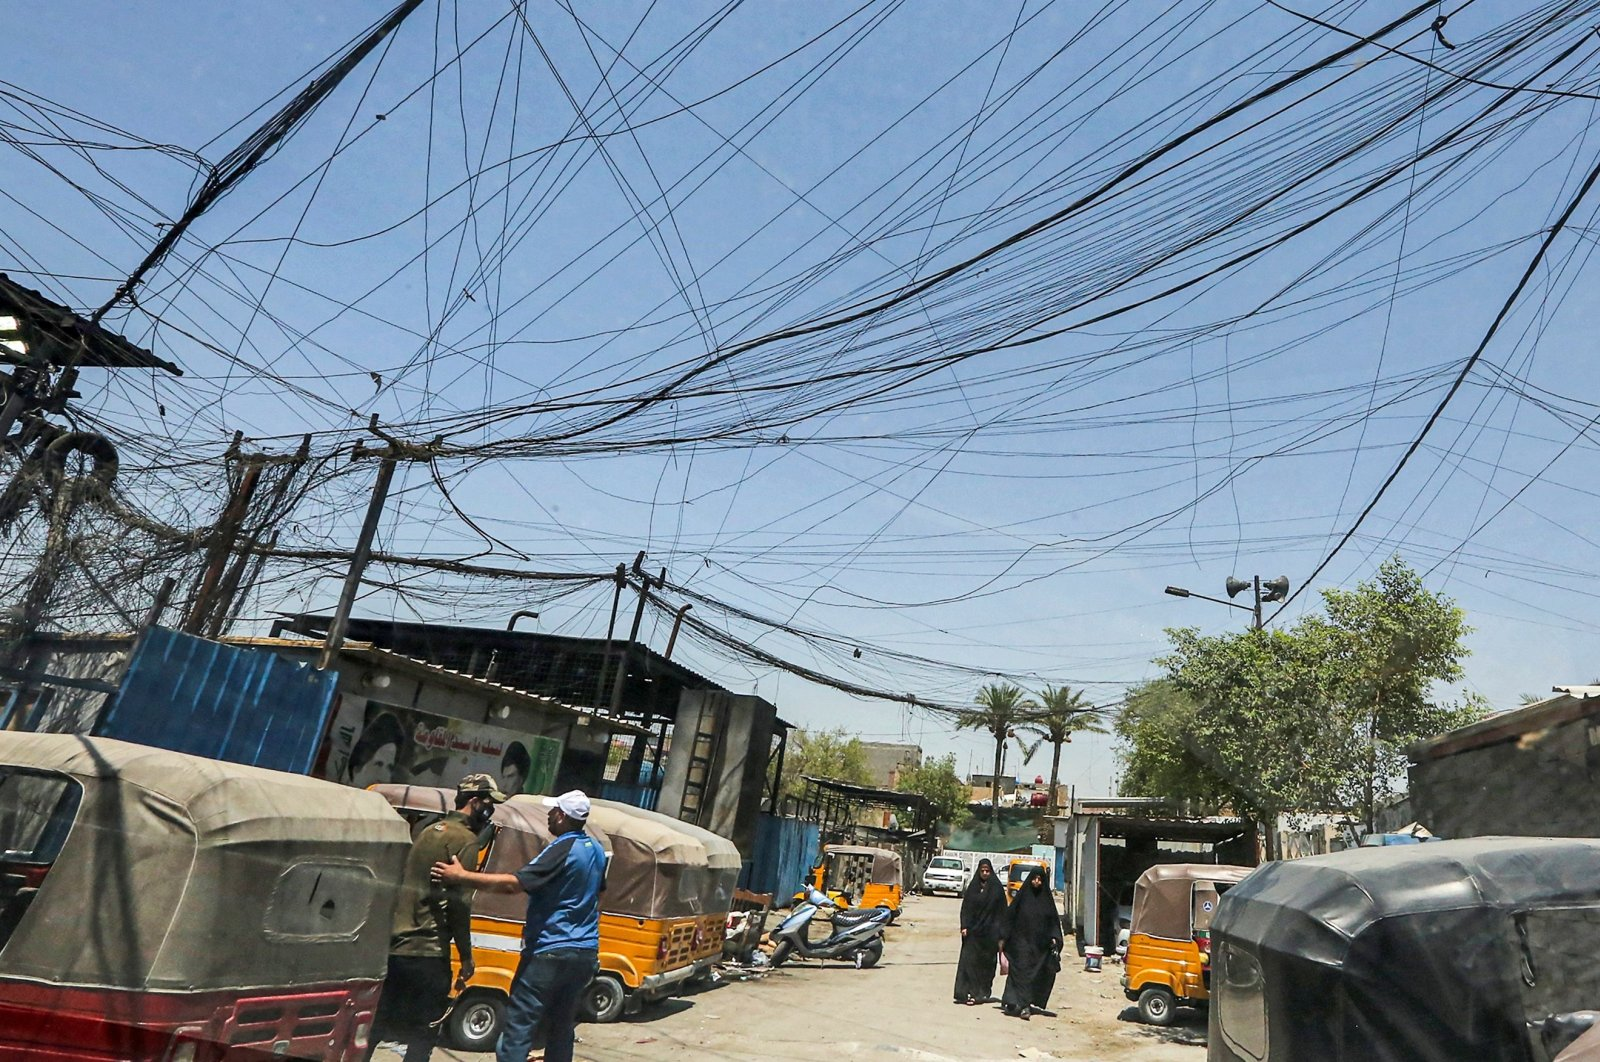 Iraqis walk under cables of private electric generator providers in Sadr City district, Baghdad, Iraq, July 16, 2021. (AFP Photo)